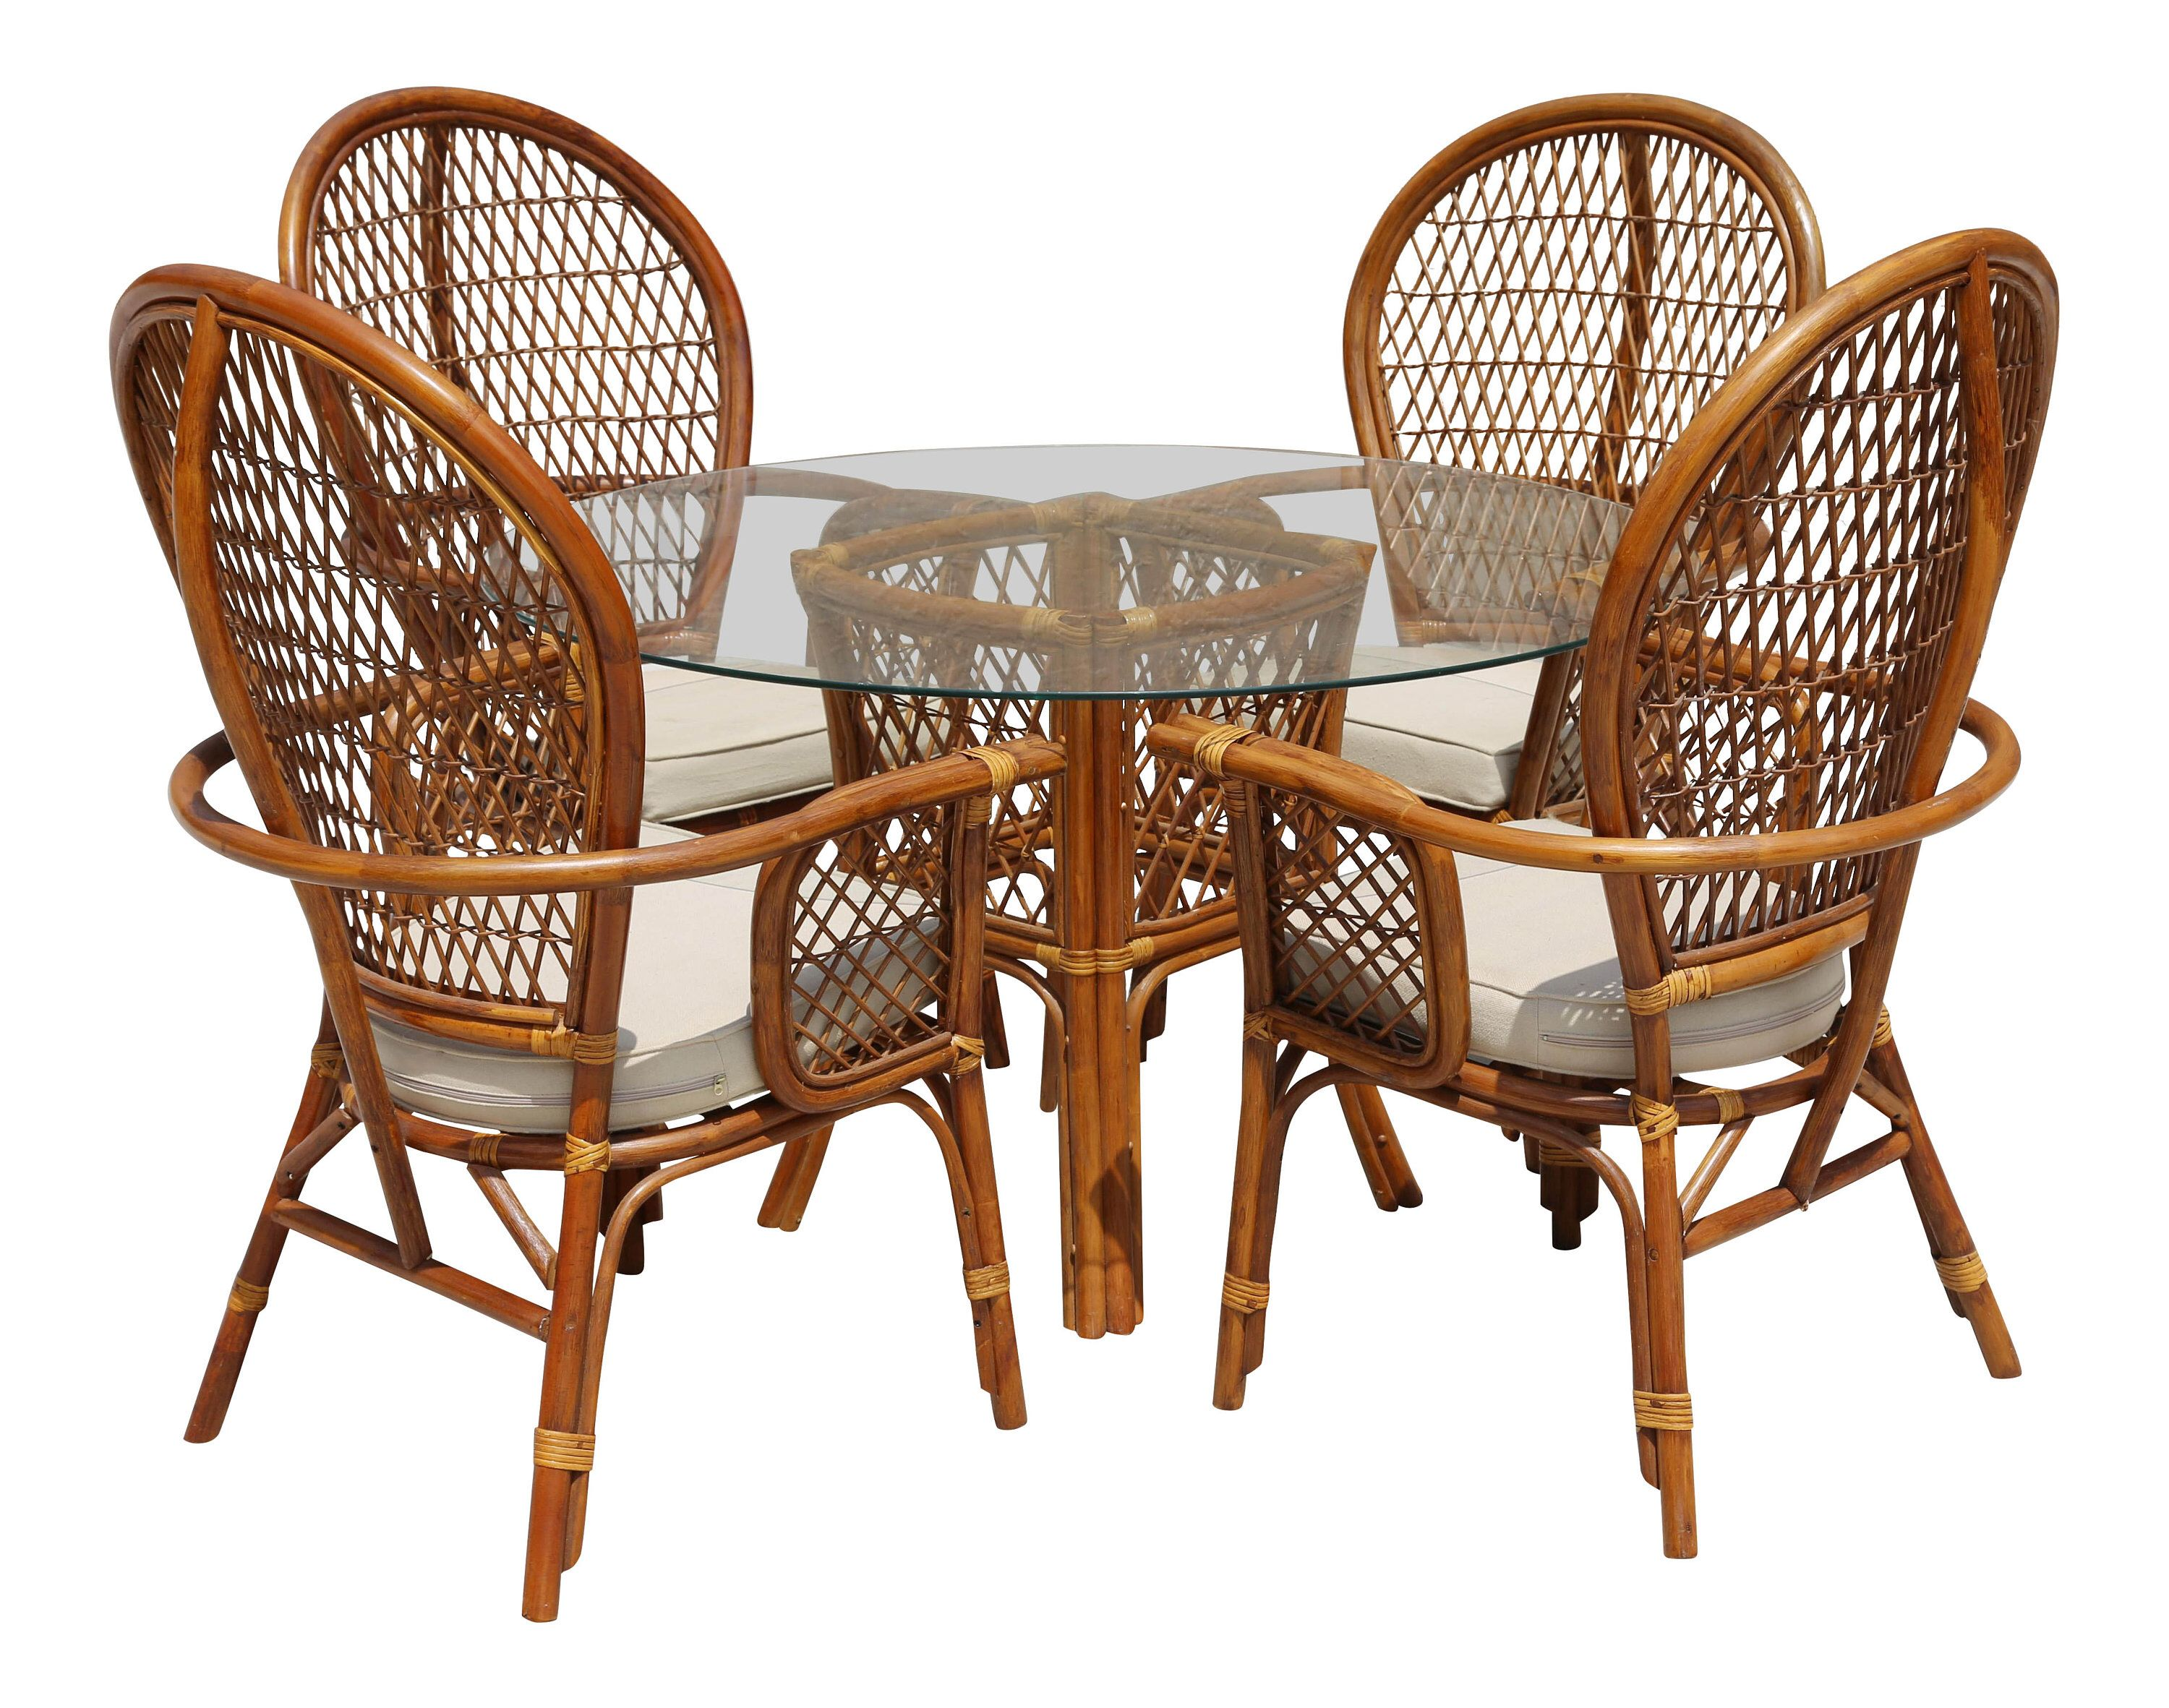 Rattan Dining Table With Glass Top And 4 Chairs Set Of 5 Florida Home Dining Table Chairs Table Dining